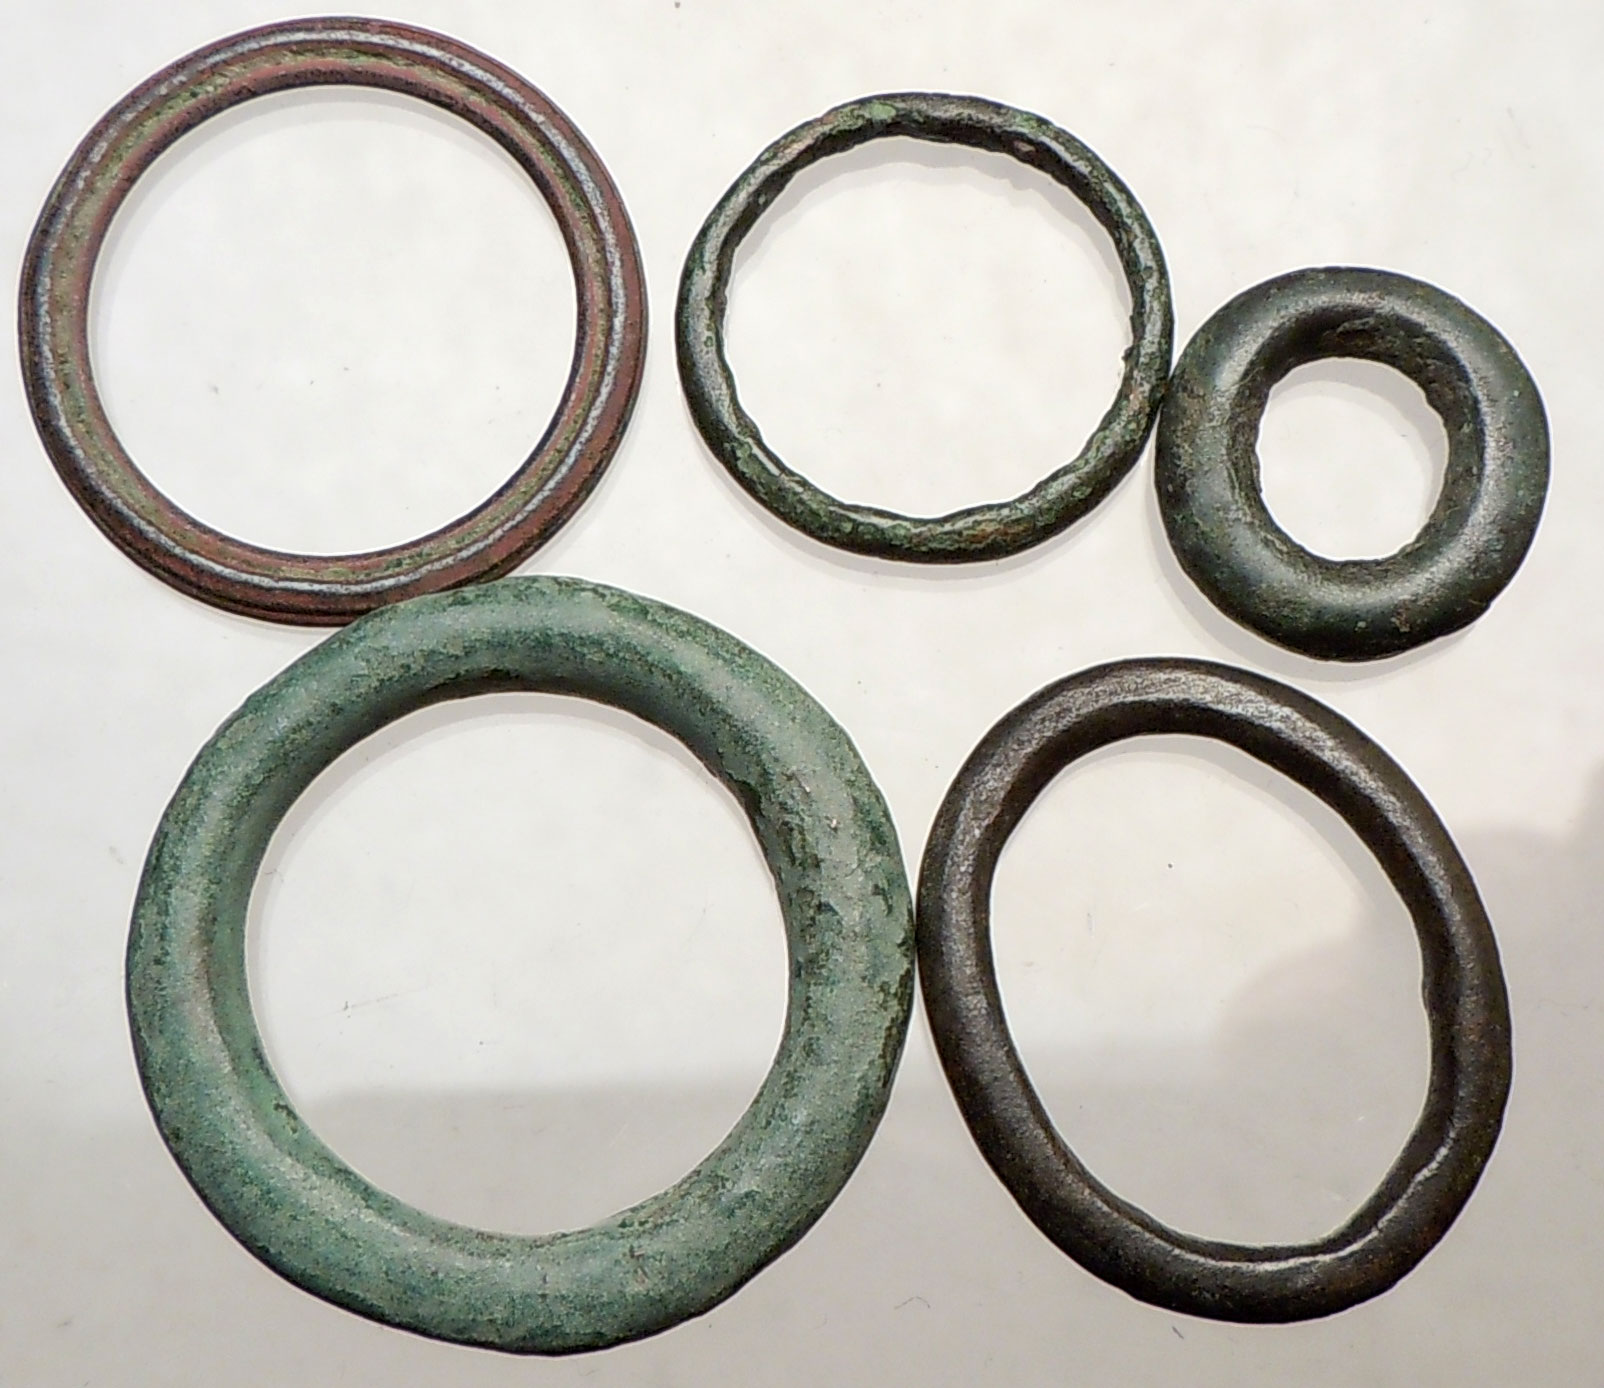 celtic 800bc authentic ancient ring money proto coin lot